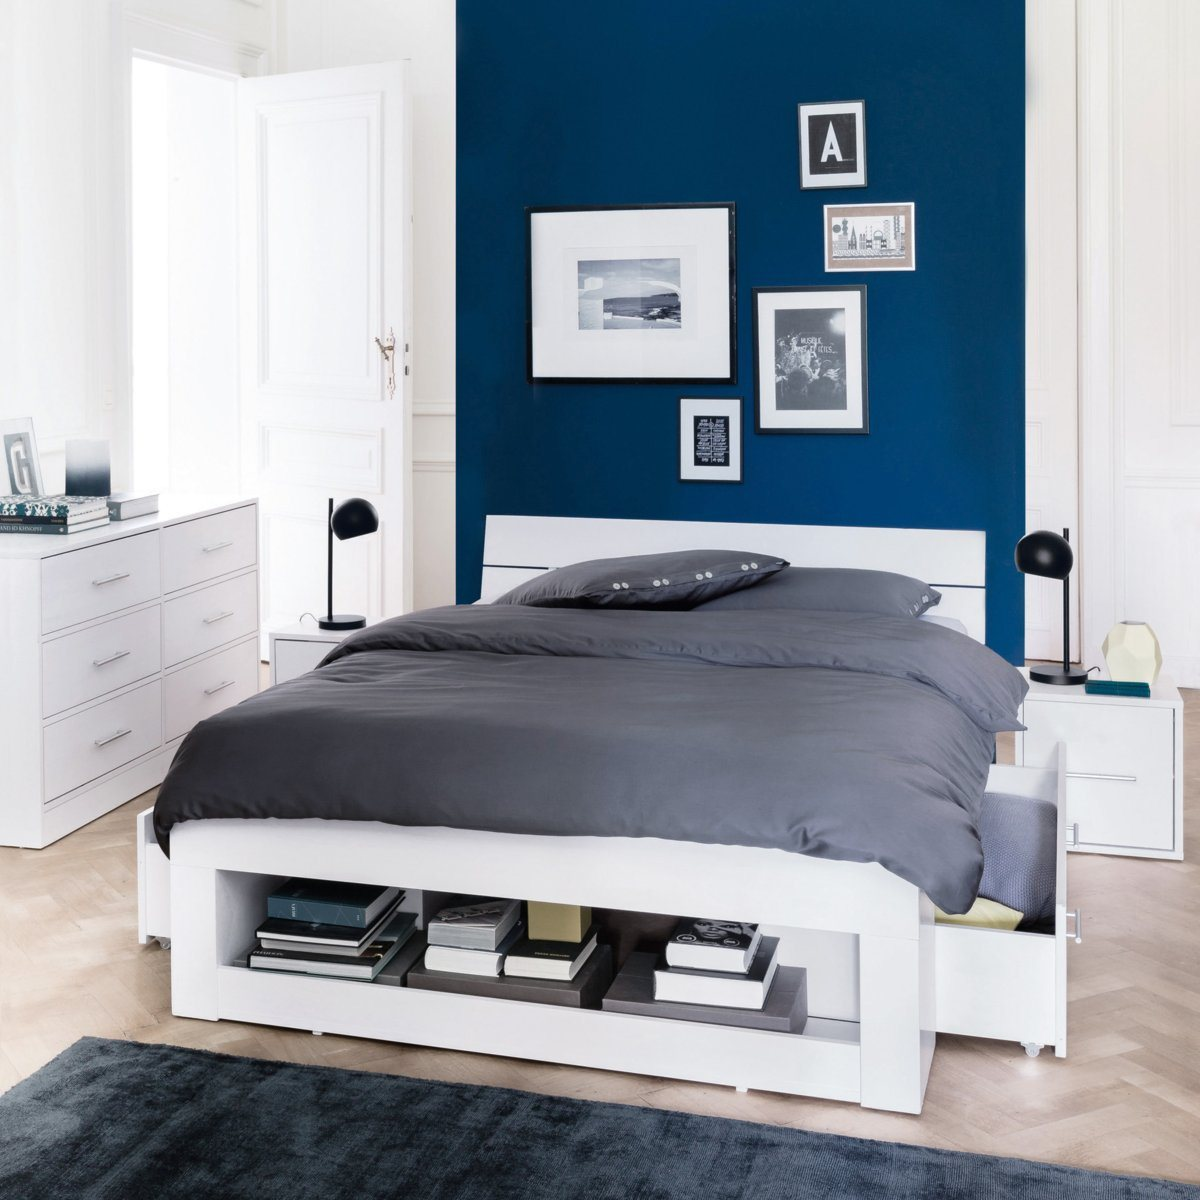 chambre bleu turquoise et beige. Black Bedroom Furniture Sets. Home Design Ideas